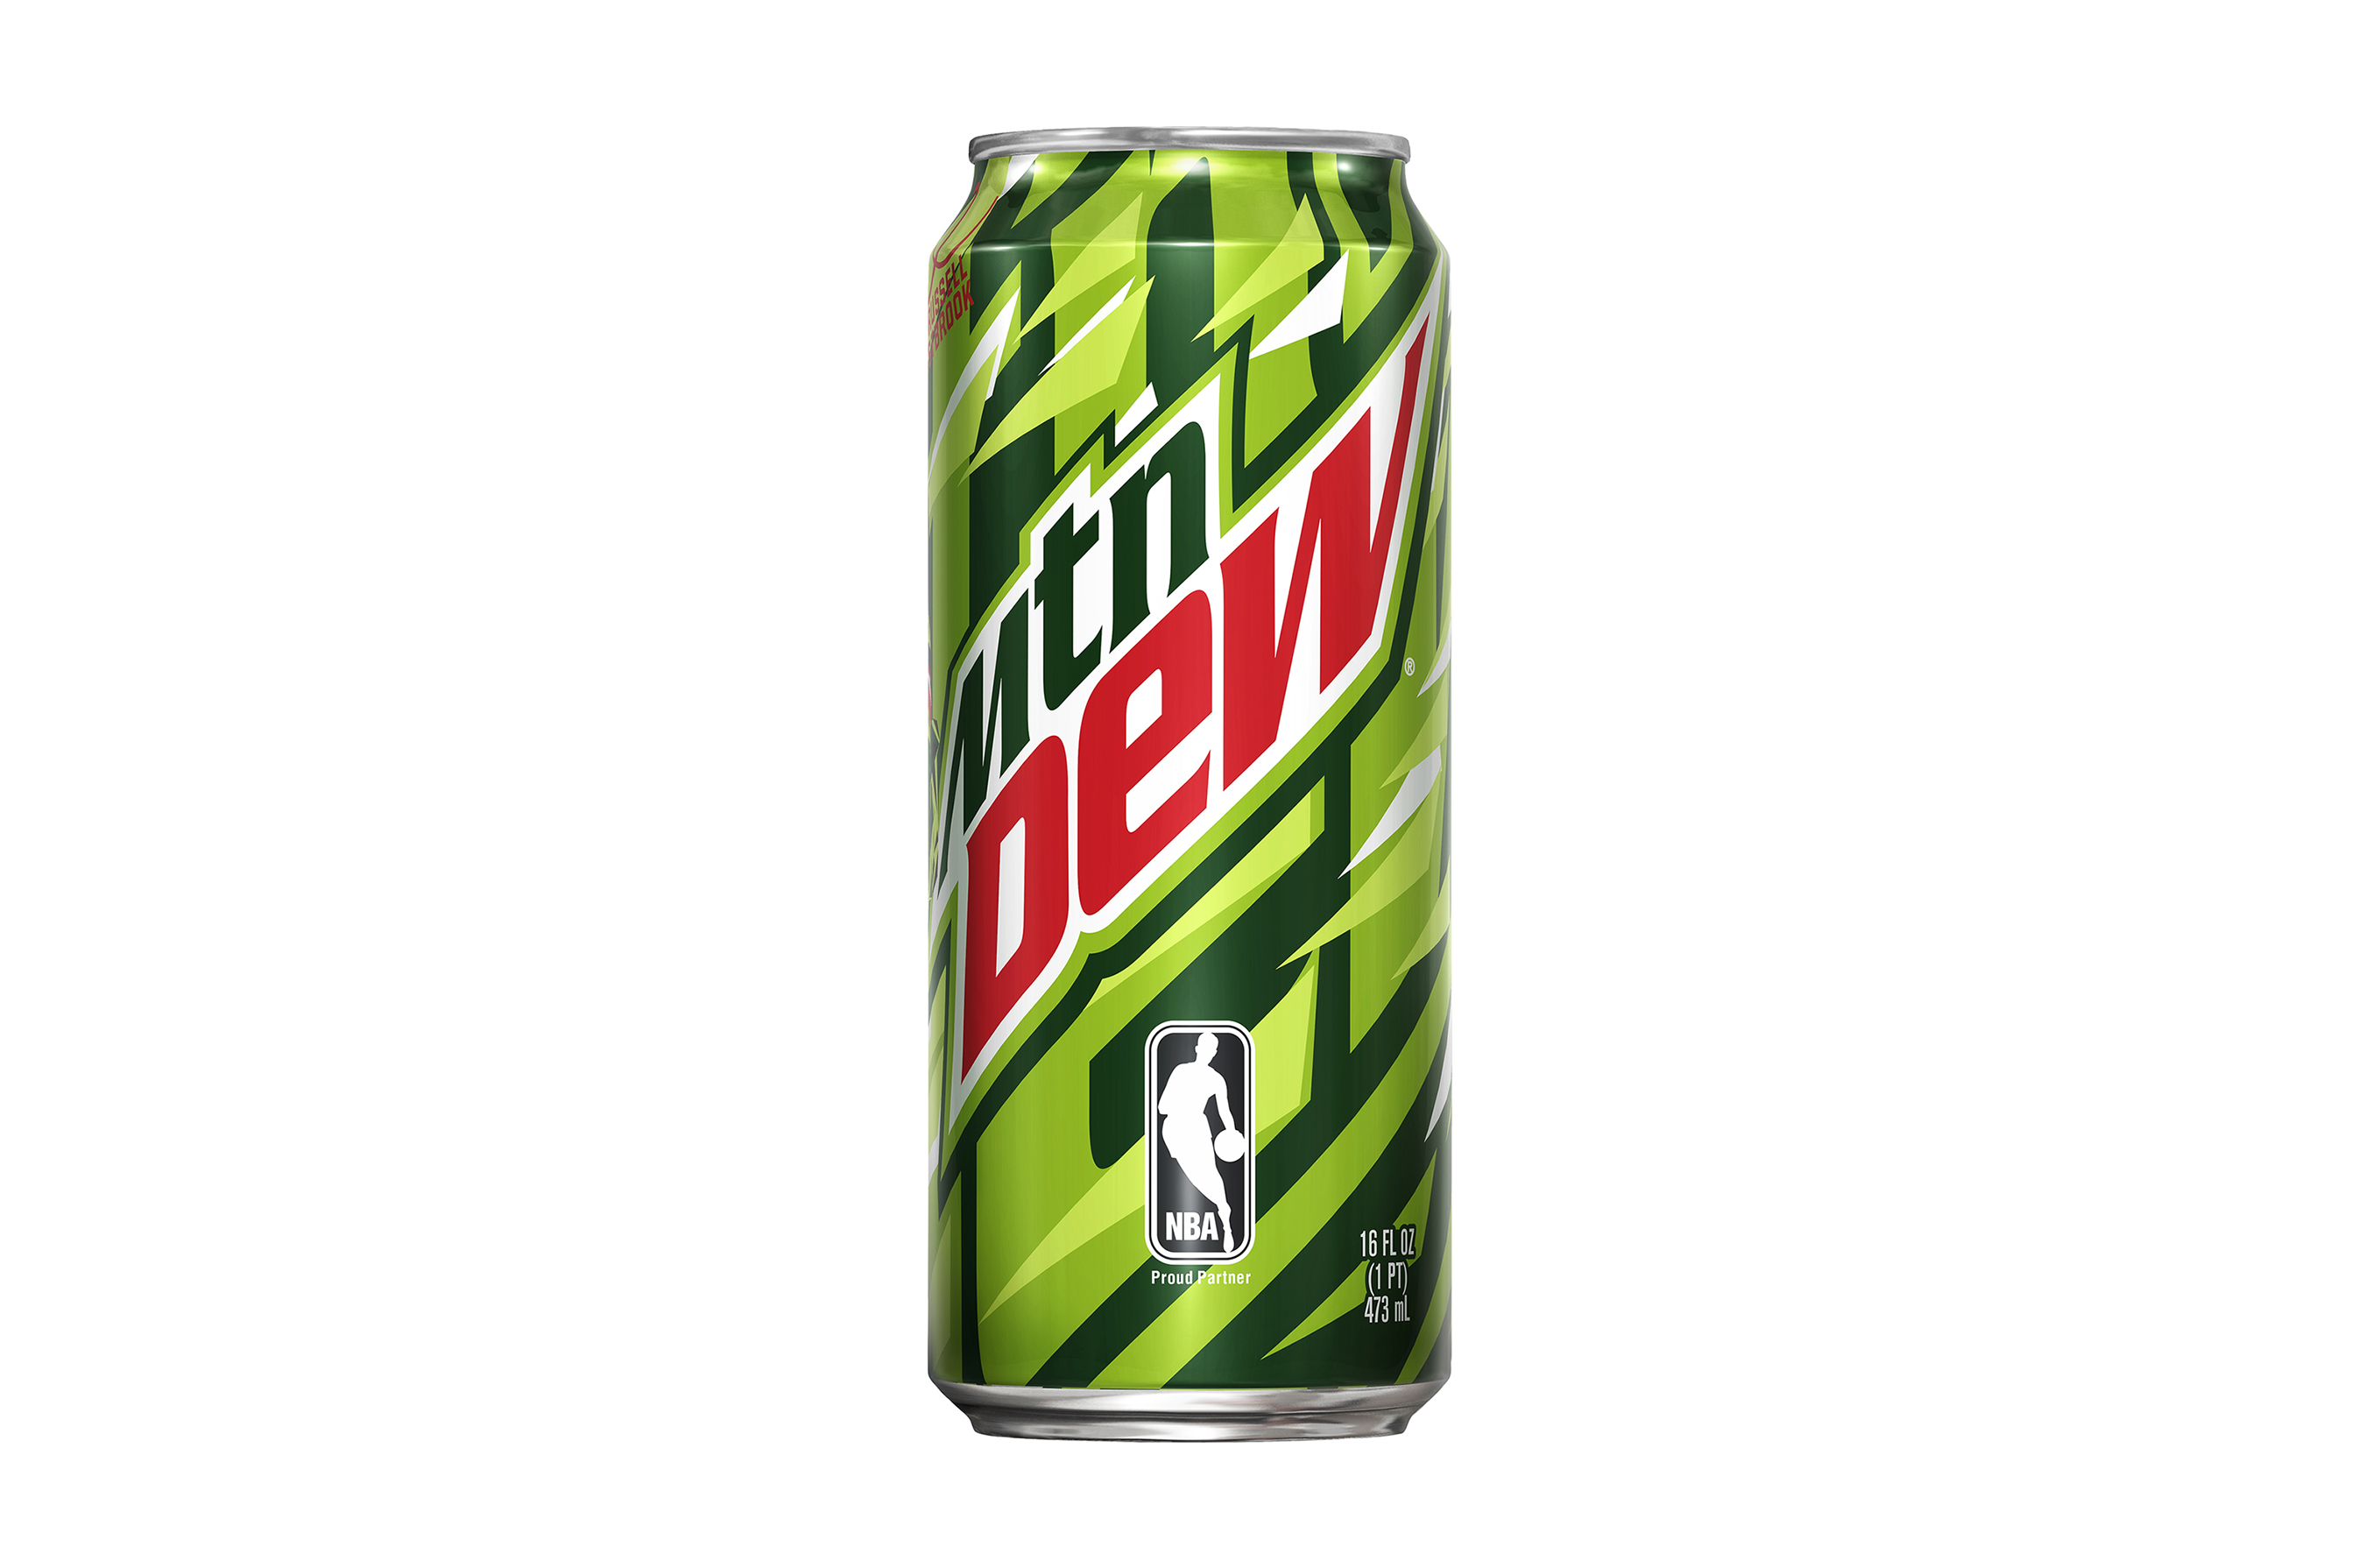 Mtn. Dew x Russell Westbrook Limited Edition Cans